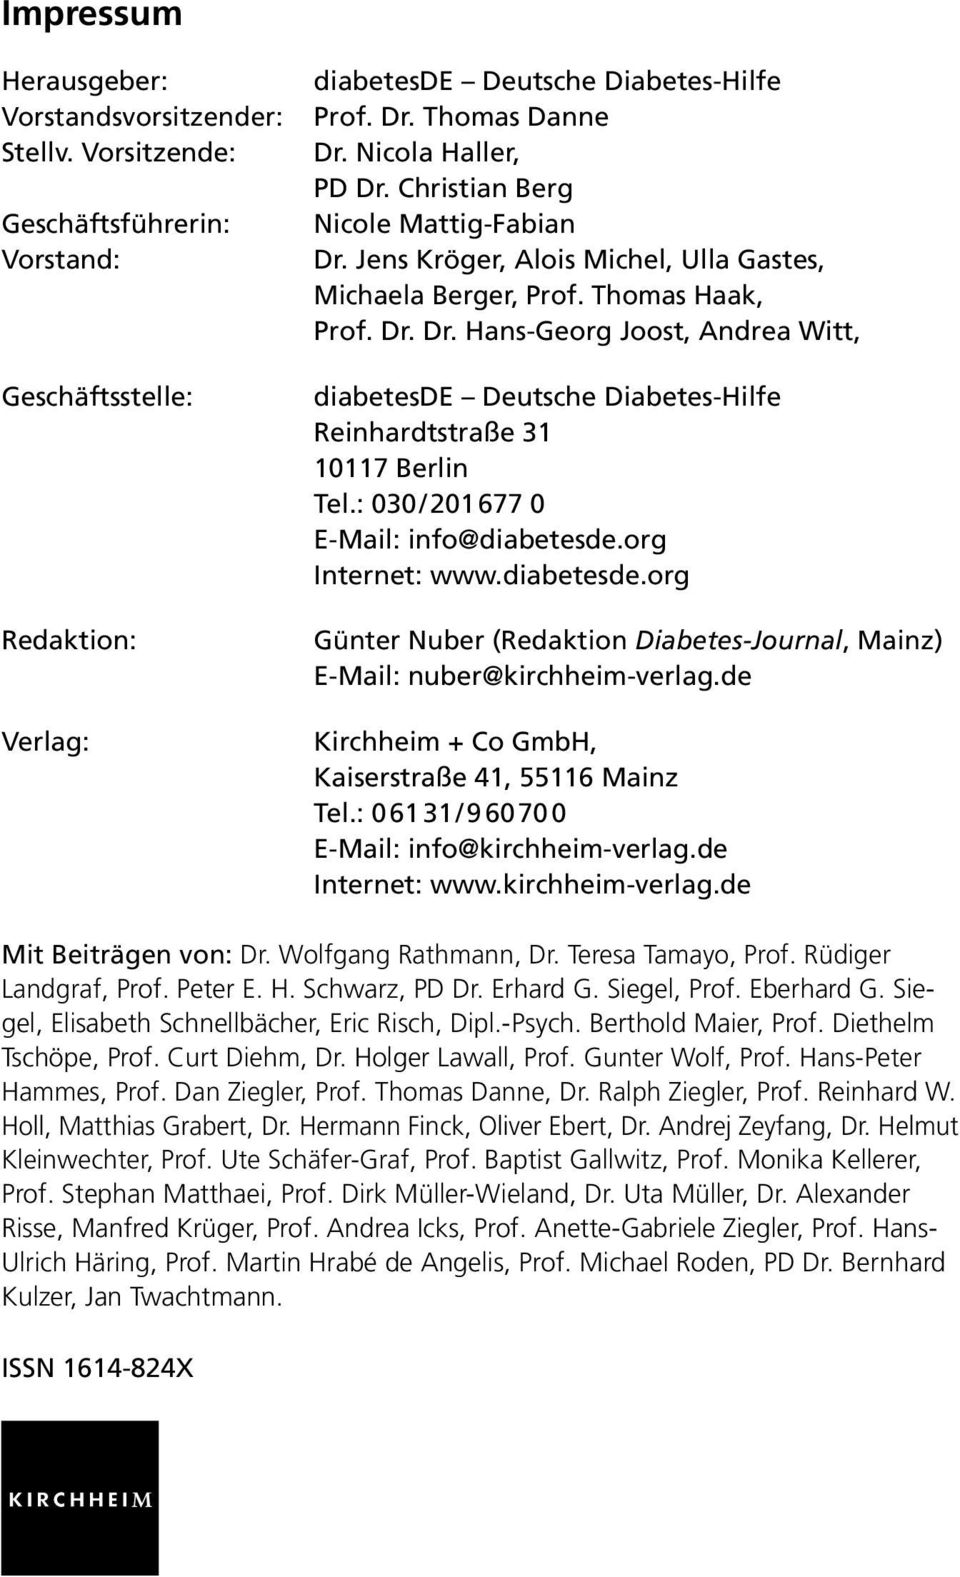 : 030 / 201 677 0 E-Mail: info@diabetesde.org Internet: www.diabetesde.org Günter Nuber (Redaktion Diabetes-Journal, Mainz) E-Mail: nuber@kirchheim-verlag.